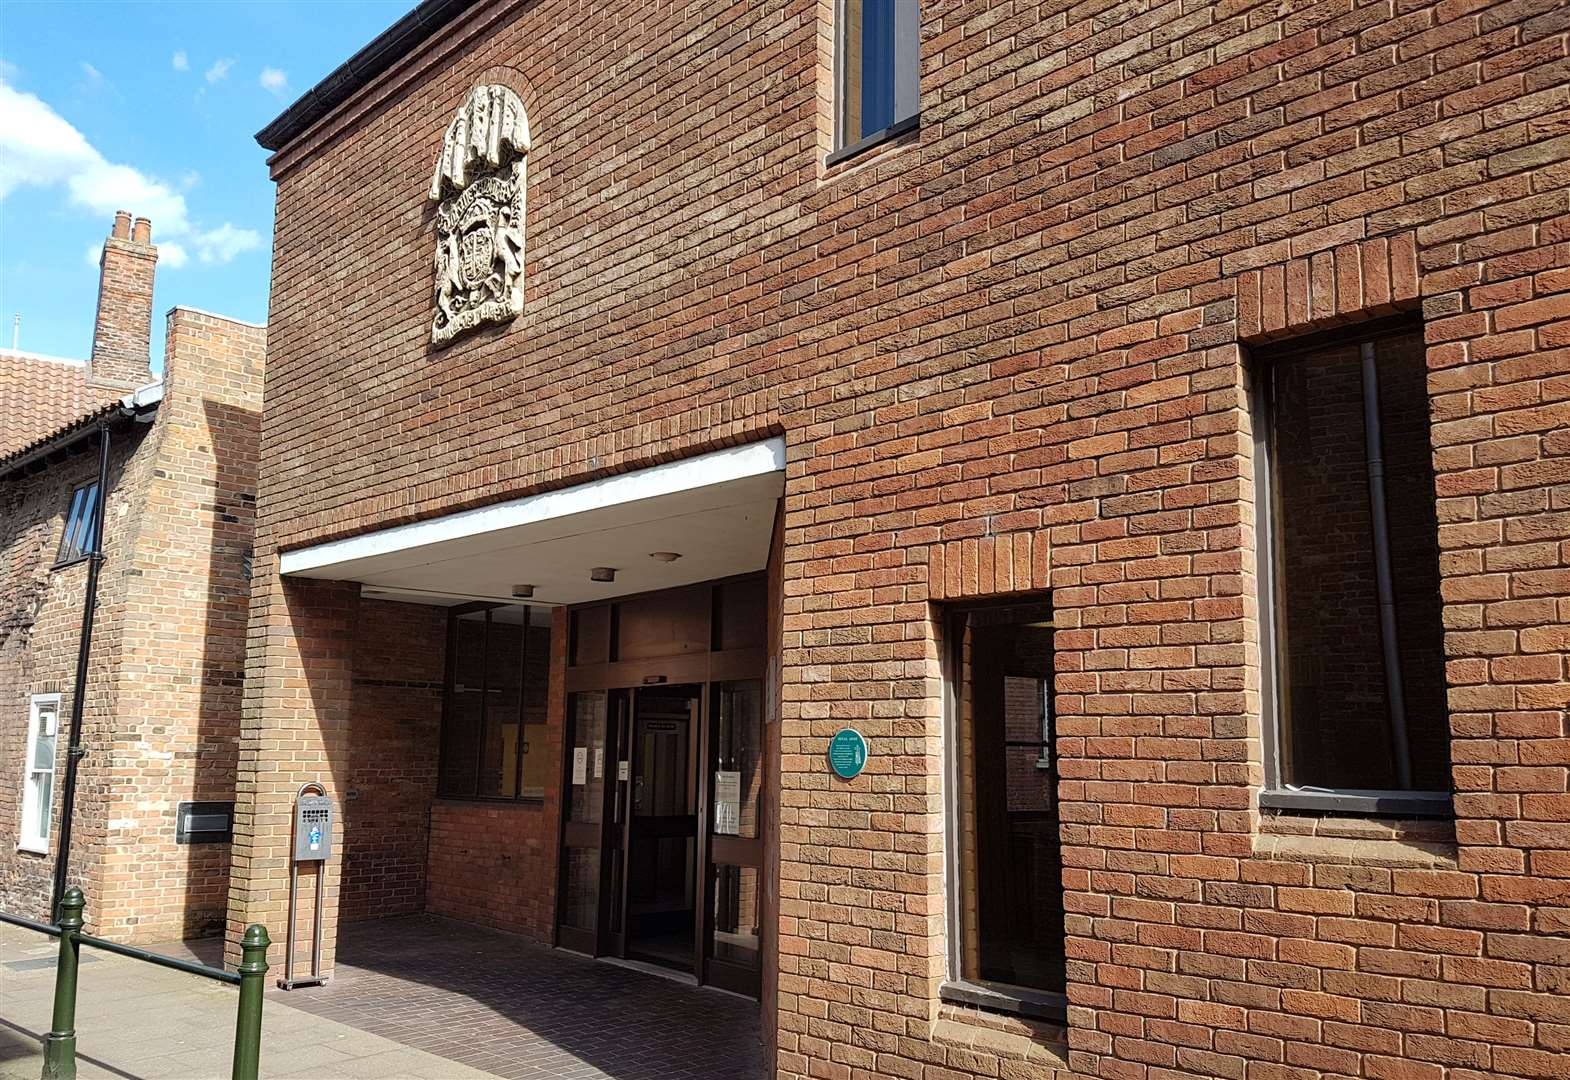 Worker admits stealing cash from elderly residents of village care home